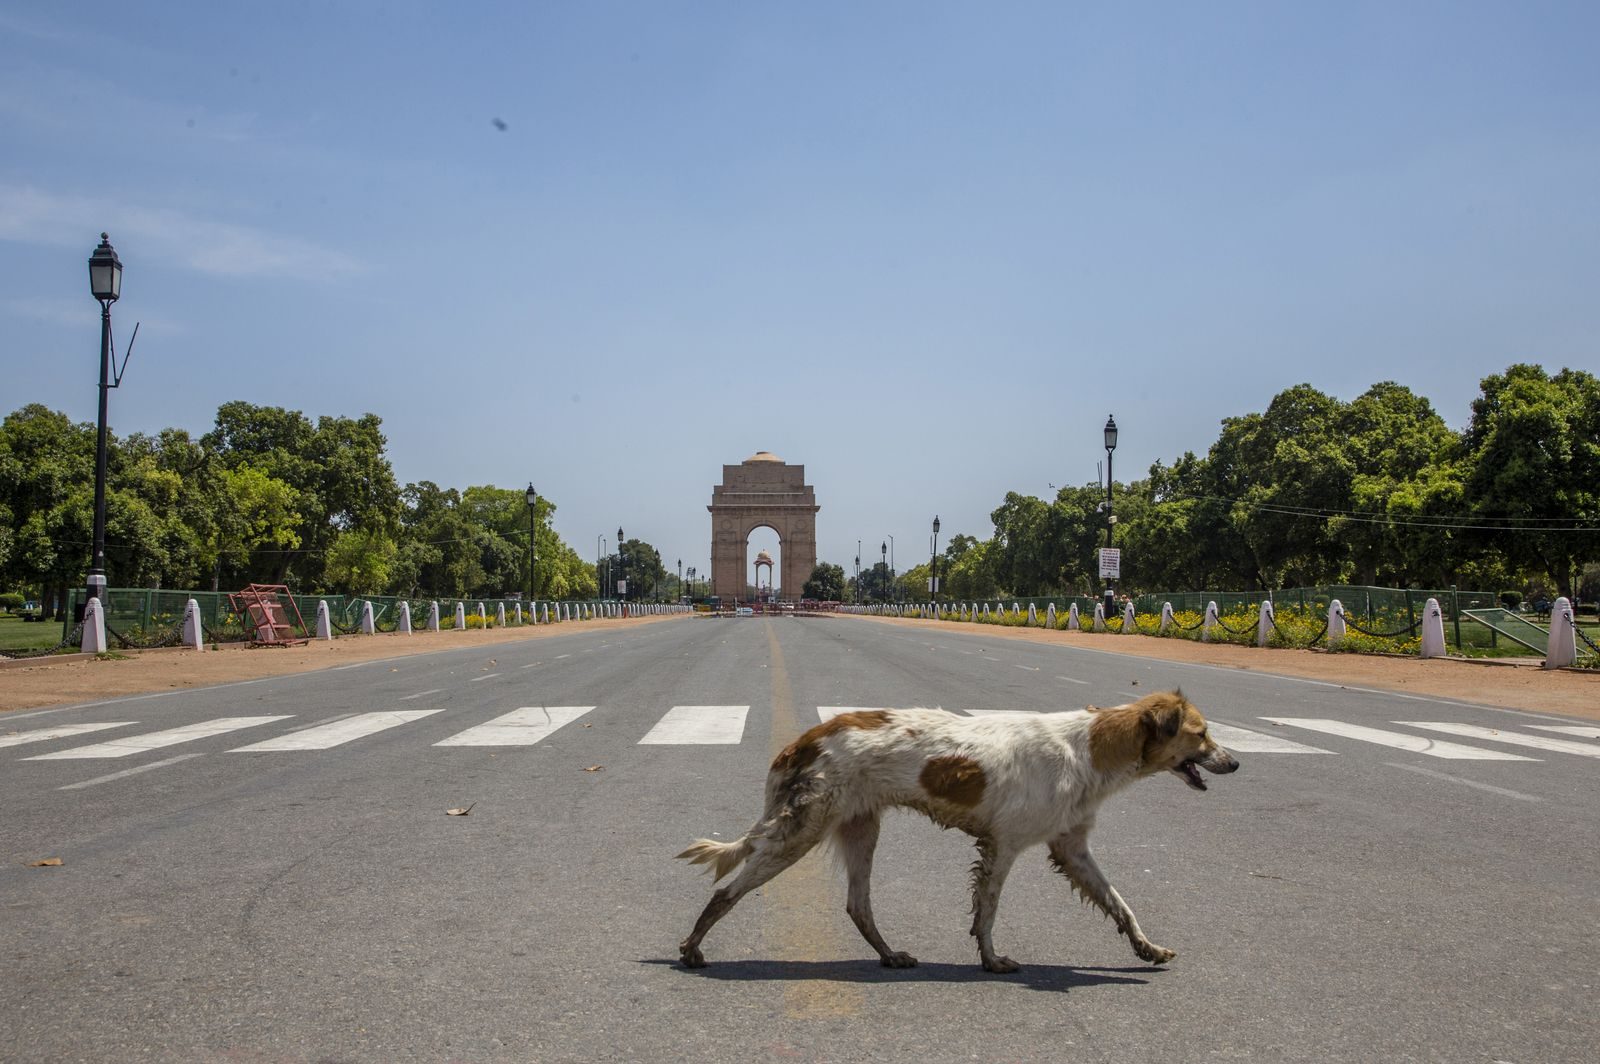 *** BESTPIX *** India Imposes Nationwide Lockdown As The Coronavirus Continue To Spread